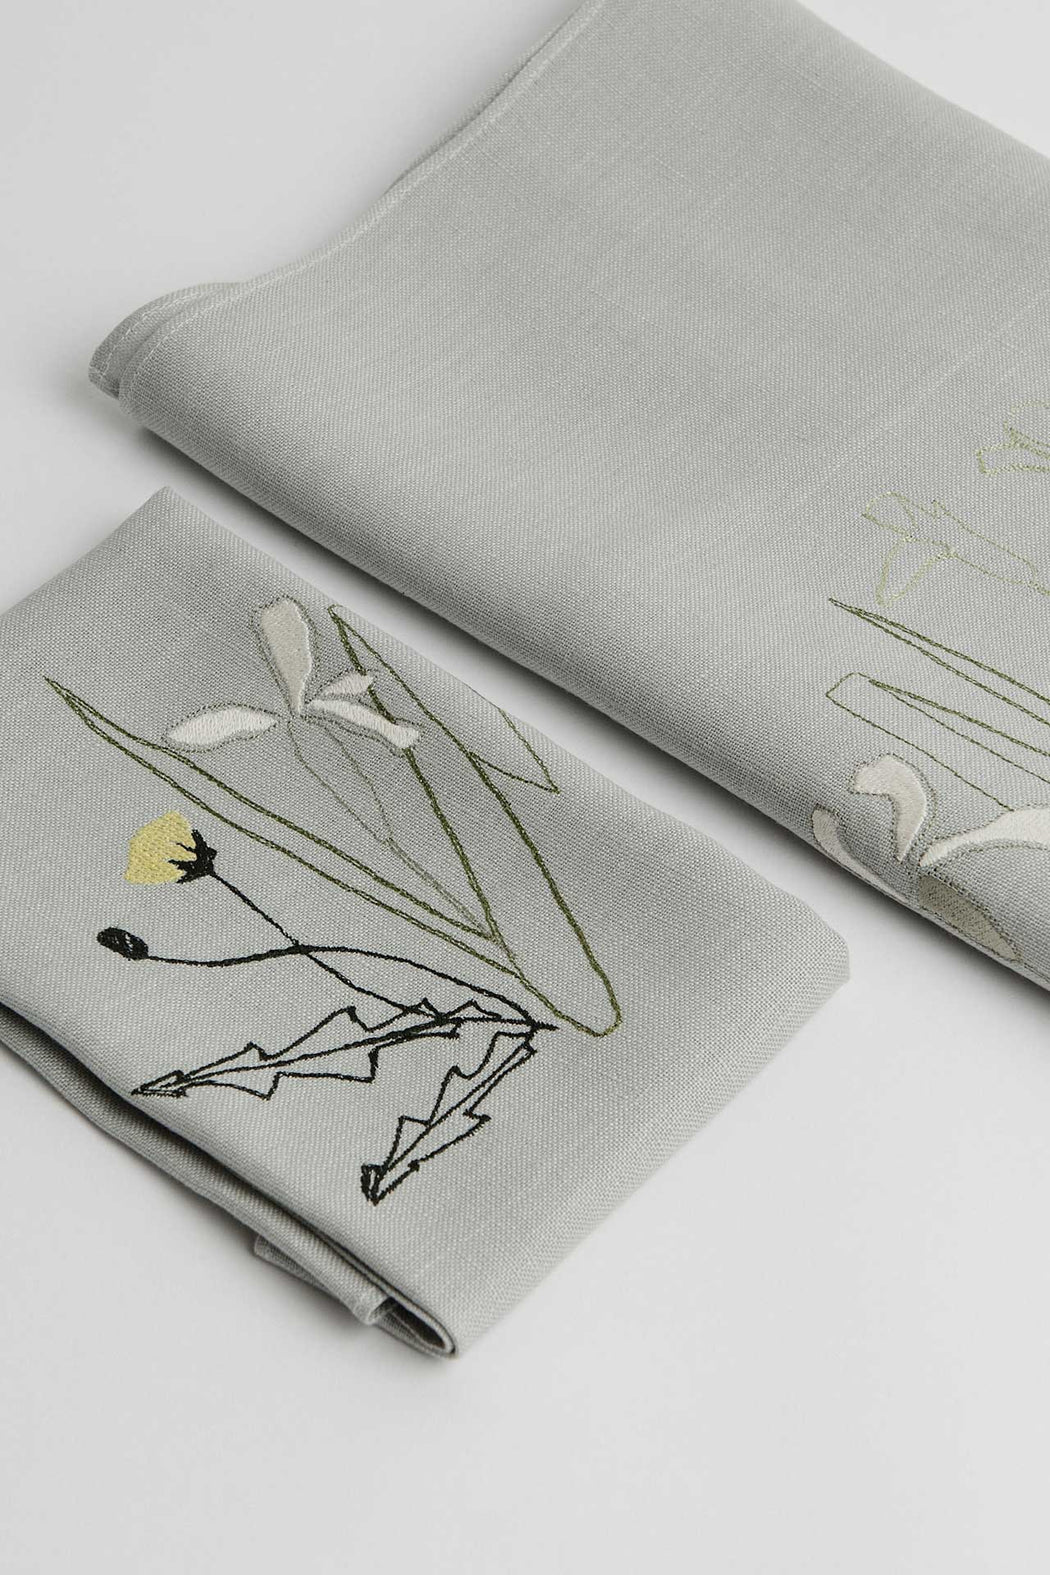 'Herbarium' Embroidered Irish Linen Napkins x 6 - Limited Edition of 100 sets